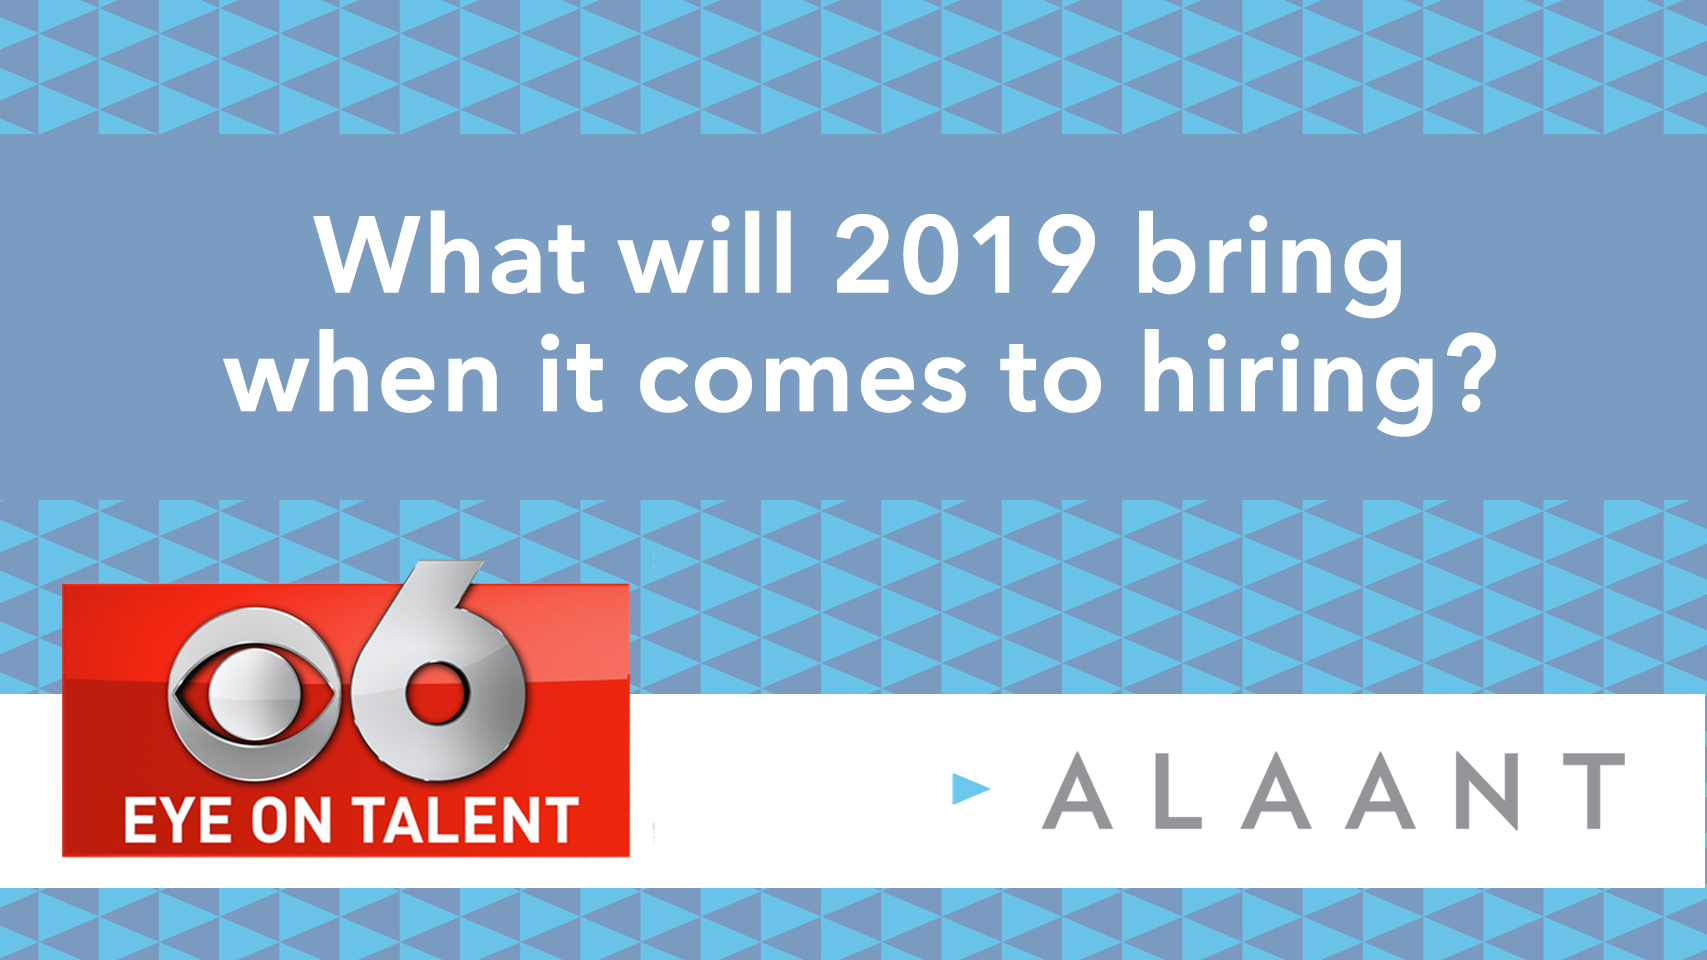 Eye On Talent: What will 2019 bring when it comes to hiring?